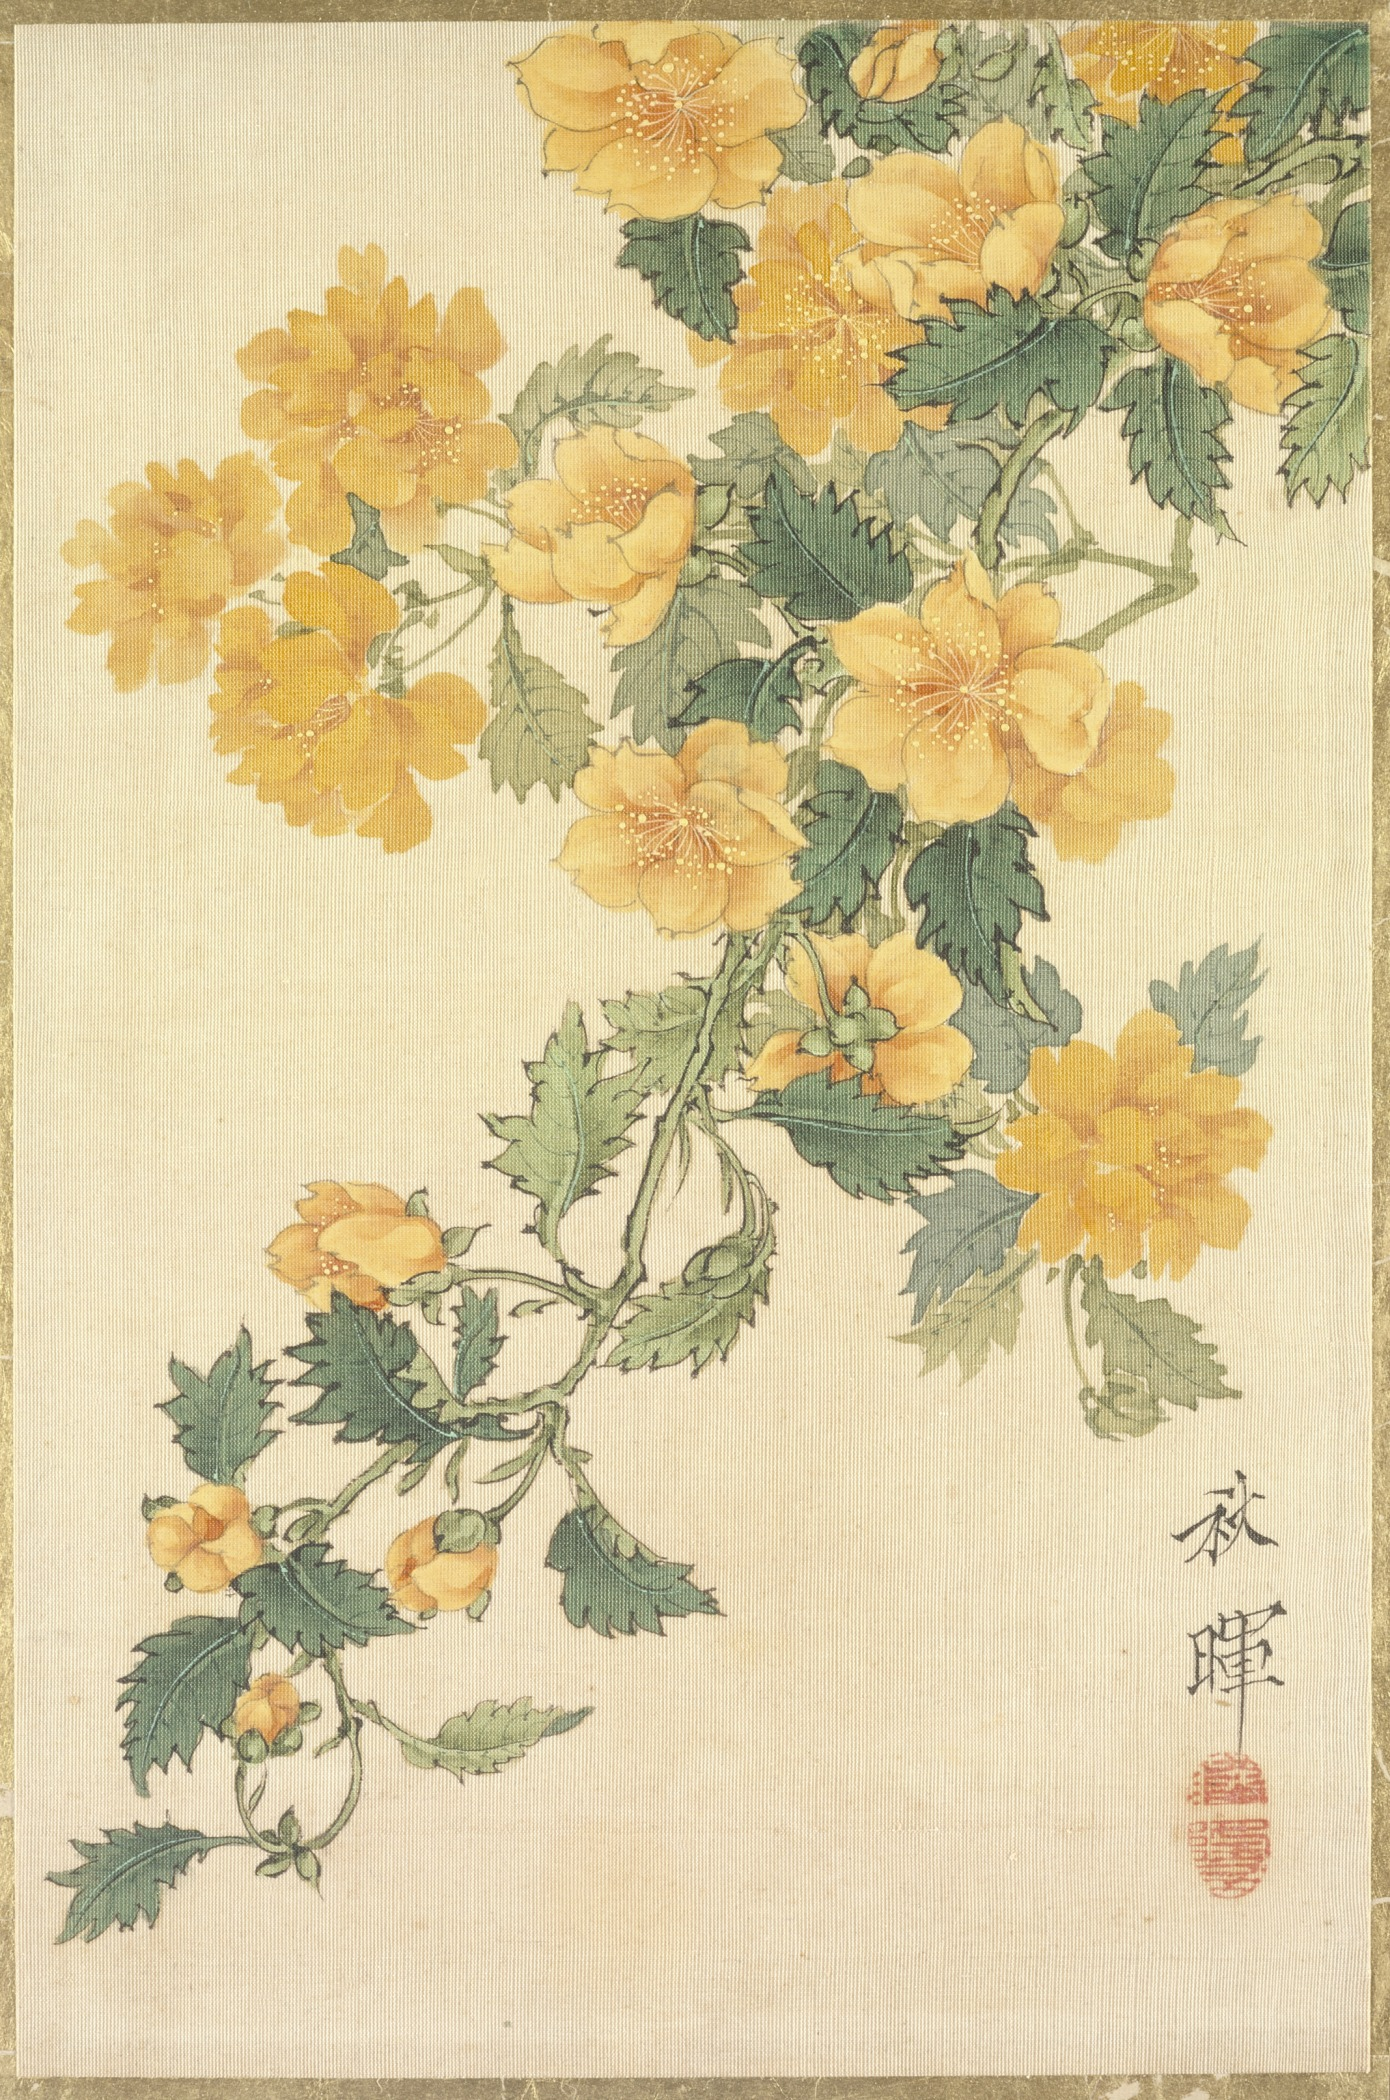 https://upload.wikimedia.org/wikipedia/commons/0/03/Pictures_of_Flowers_and_Birds_LACMA_M.85.99_%2814_of_25%29.jpg